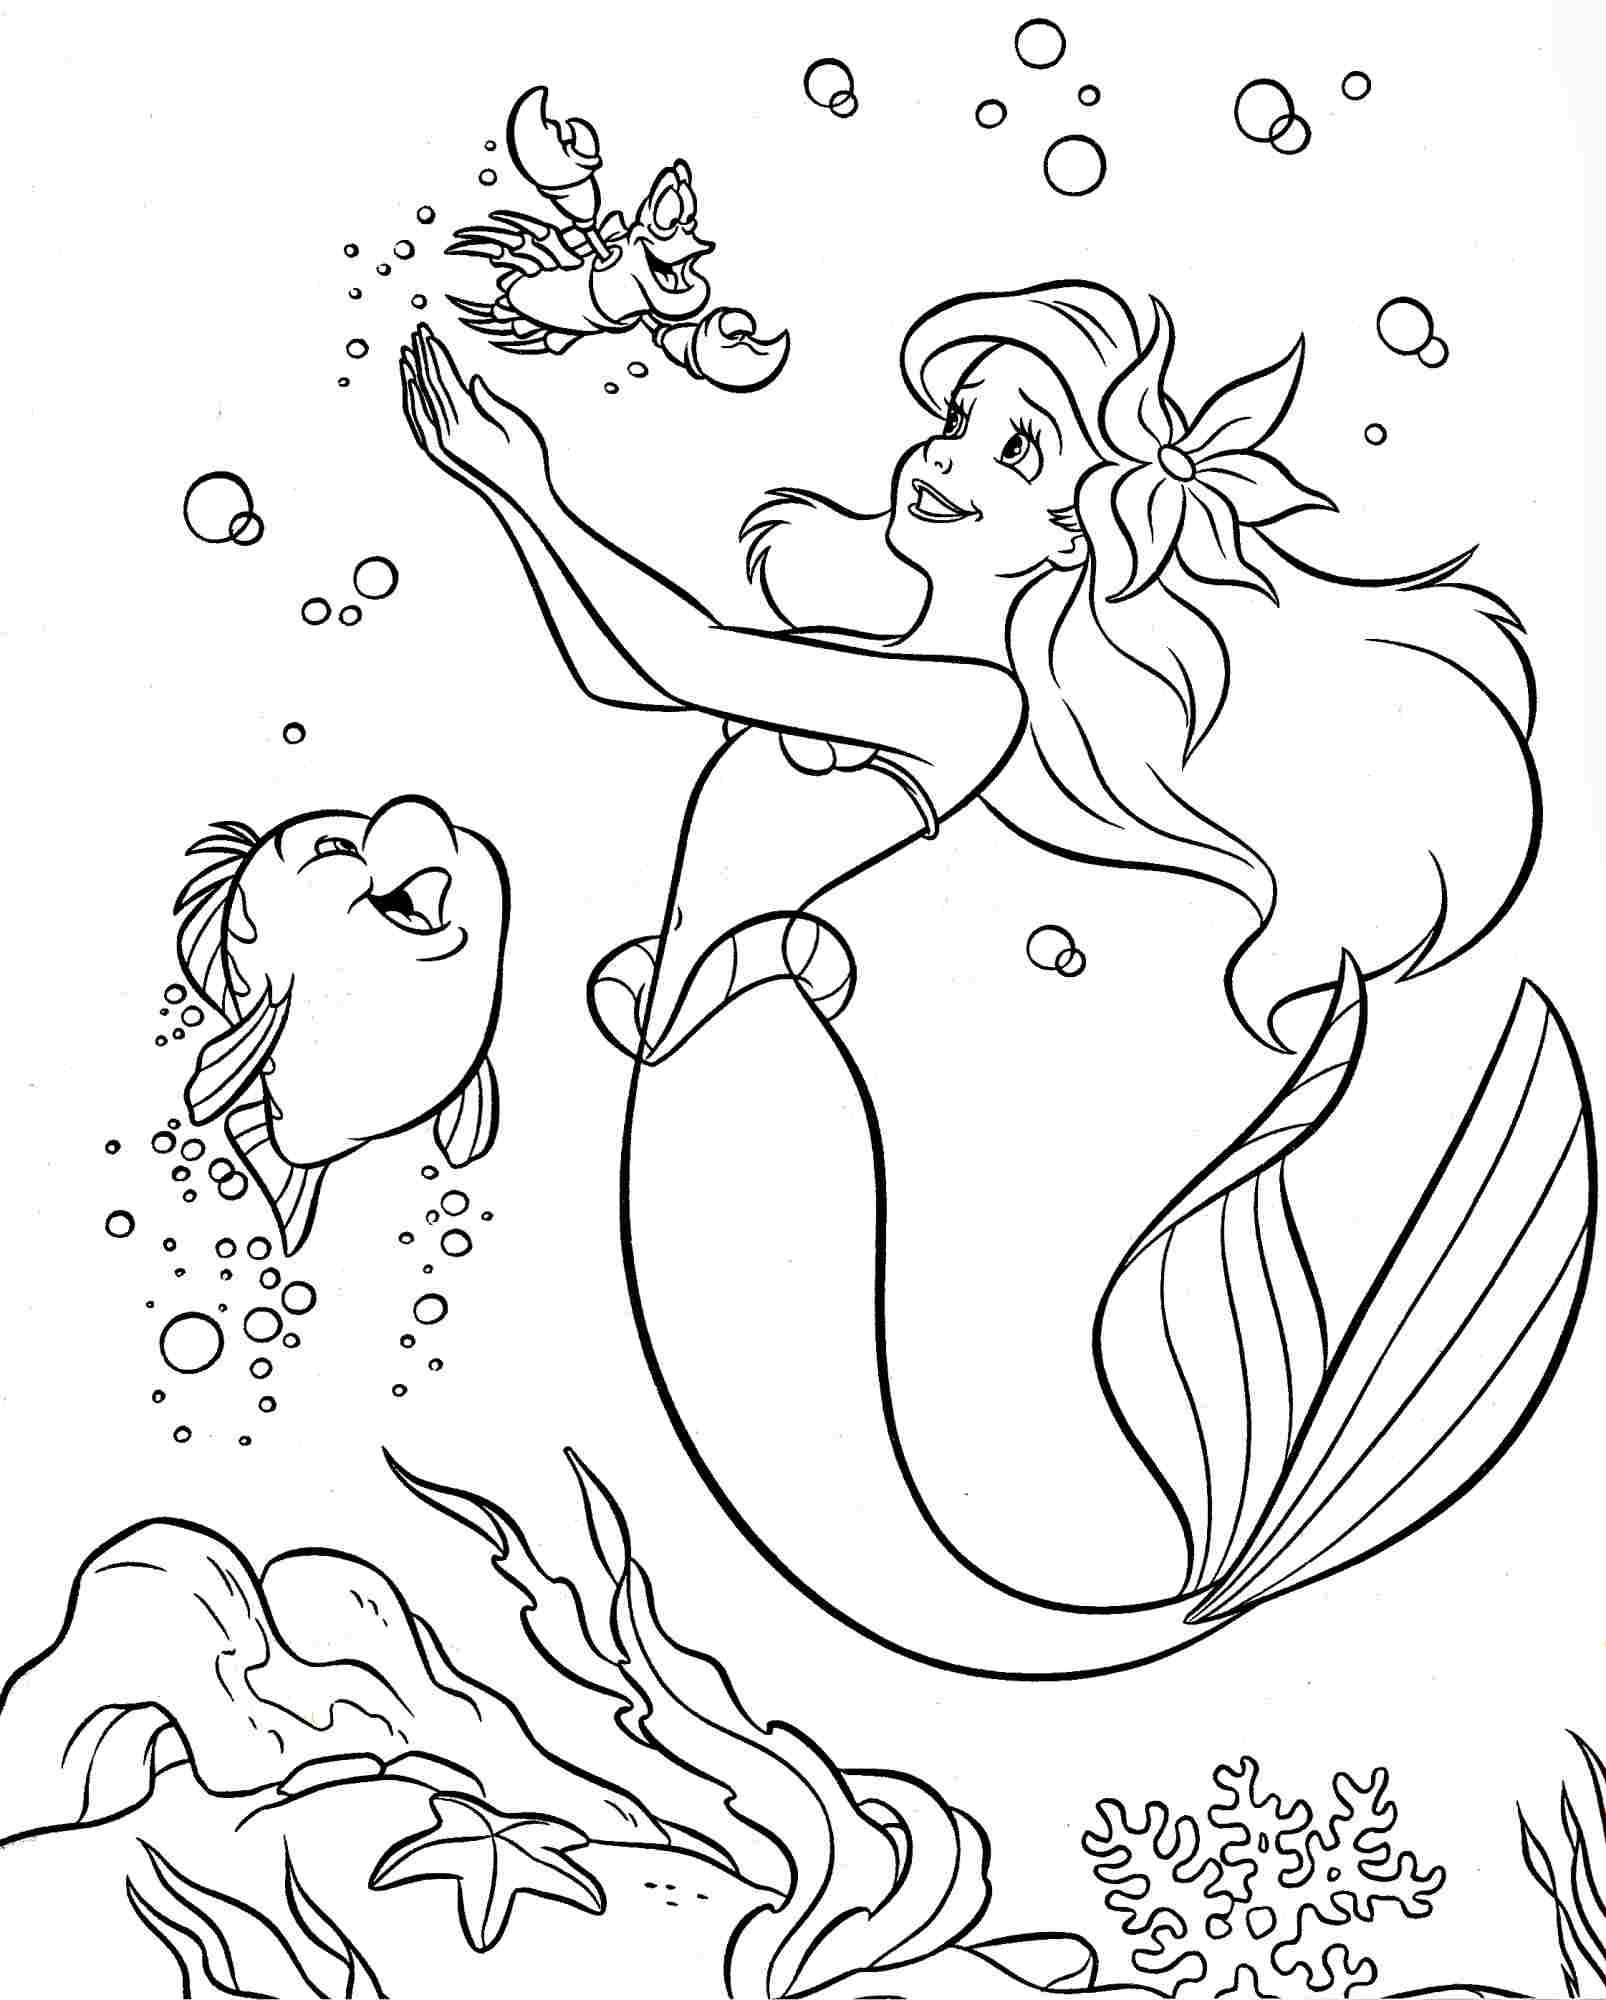 Colouring Pages Coloring Pages Disney Princess Little Mermaid Ariel For Kids Free Printable For